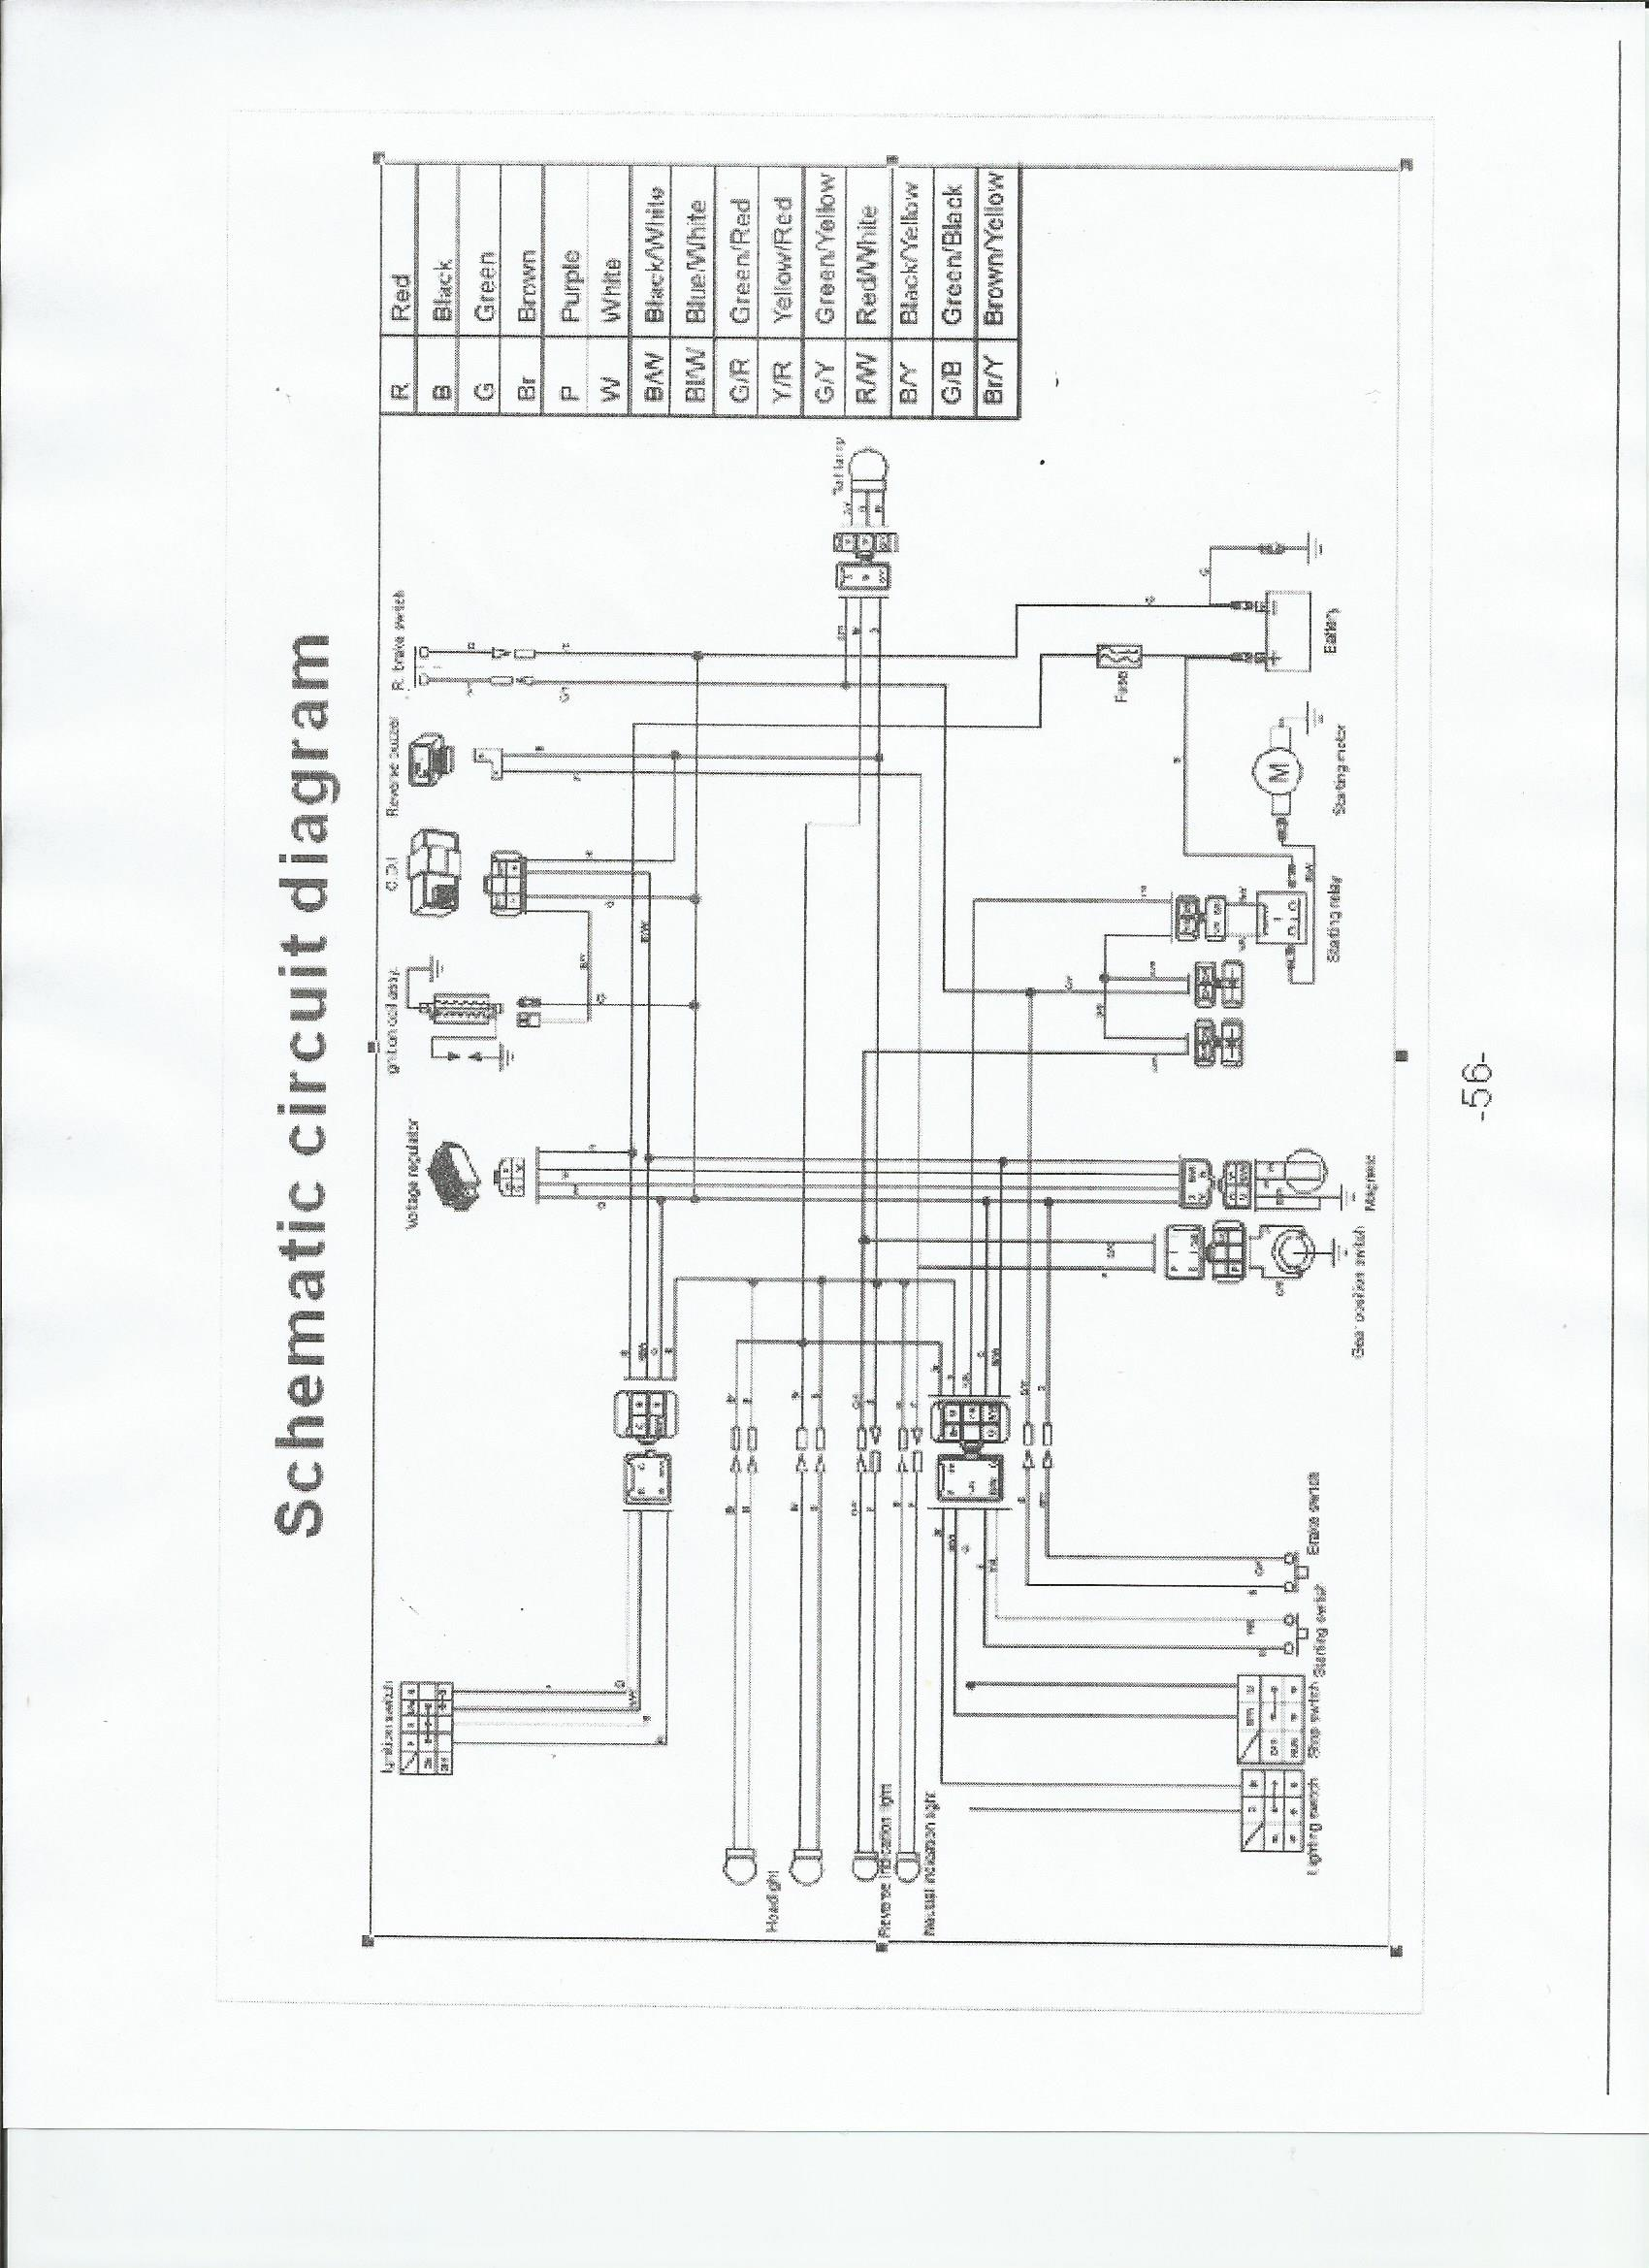 medium resolution of jcl atv wiring diagrams wiring diagram blogatv wiring schematic wiring diagram priv jcl atv wiring diagrams